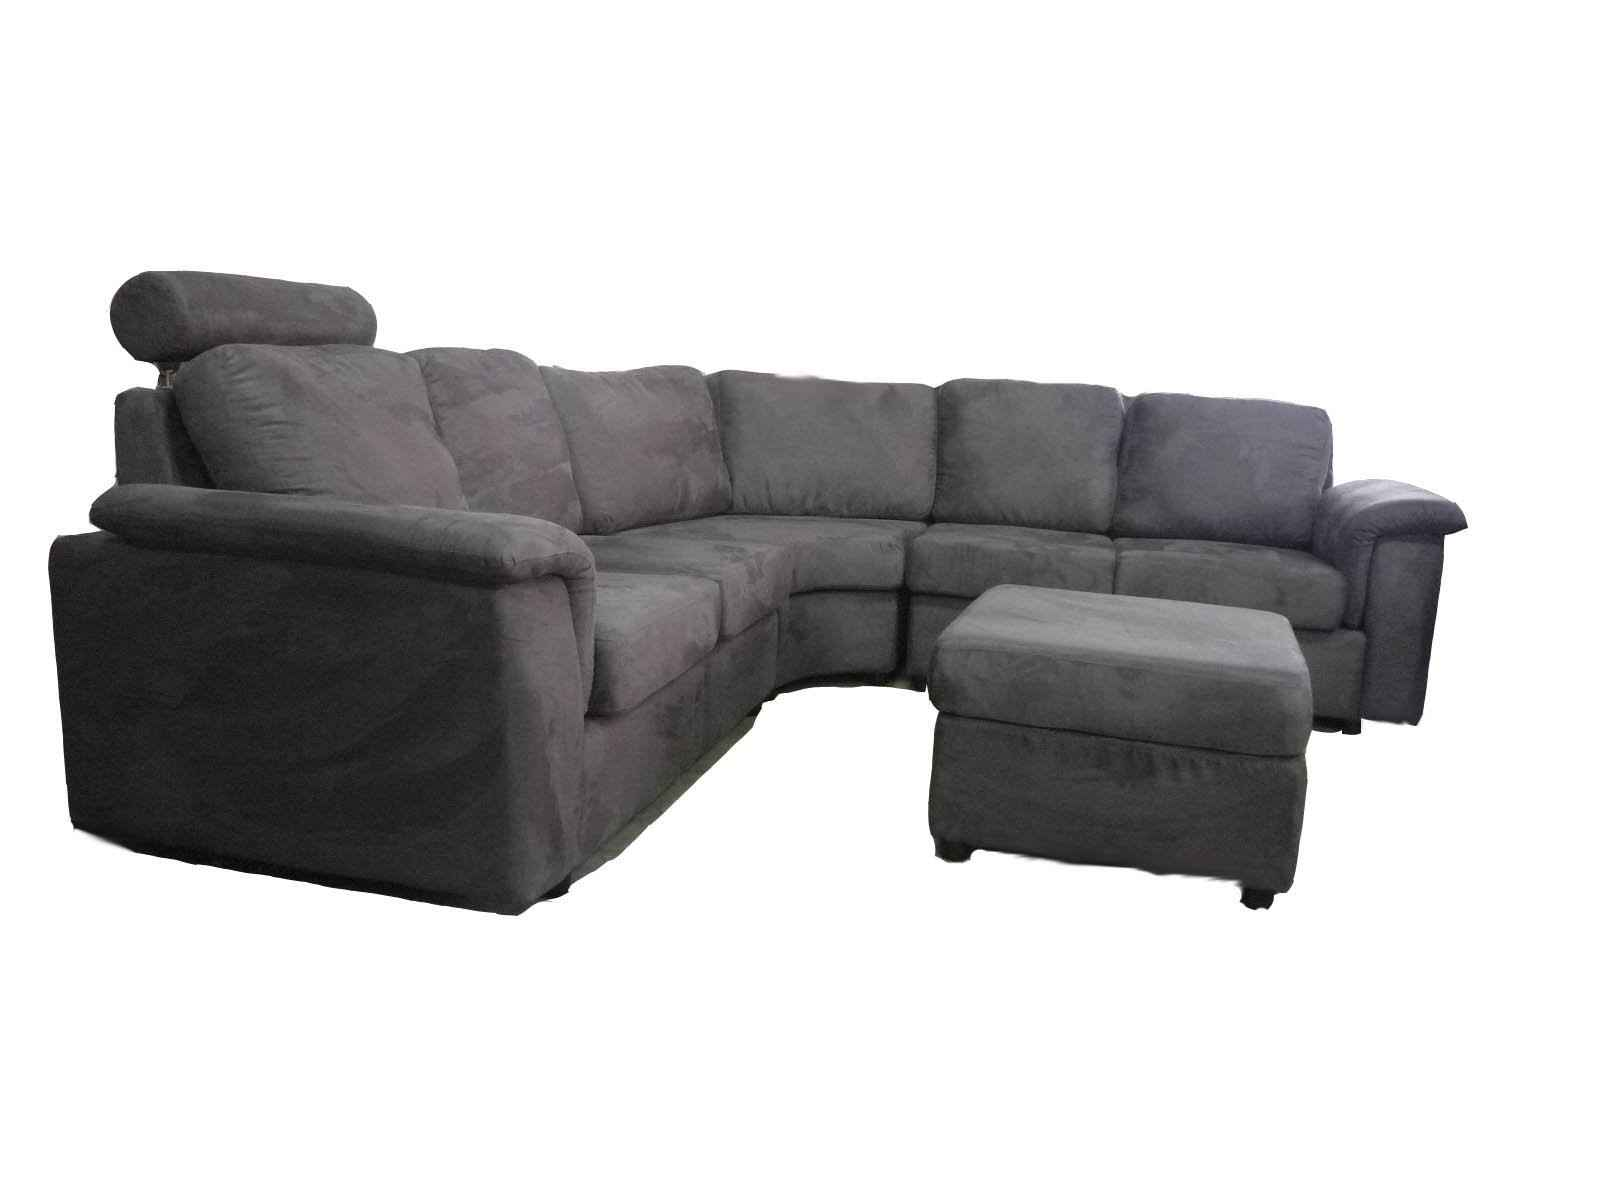 cheap sectionals sofas in grey